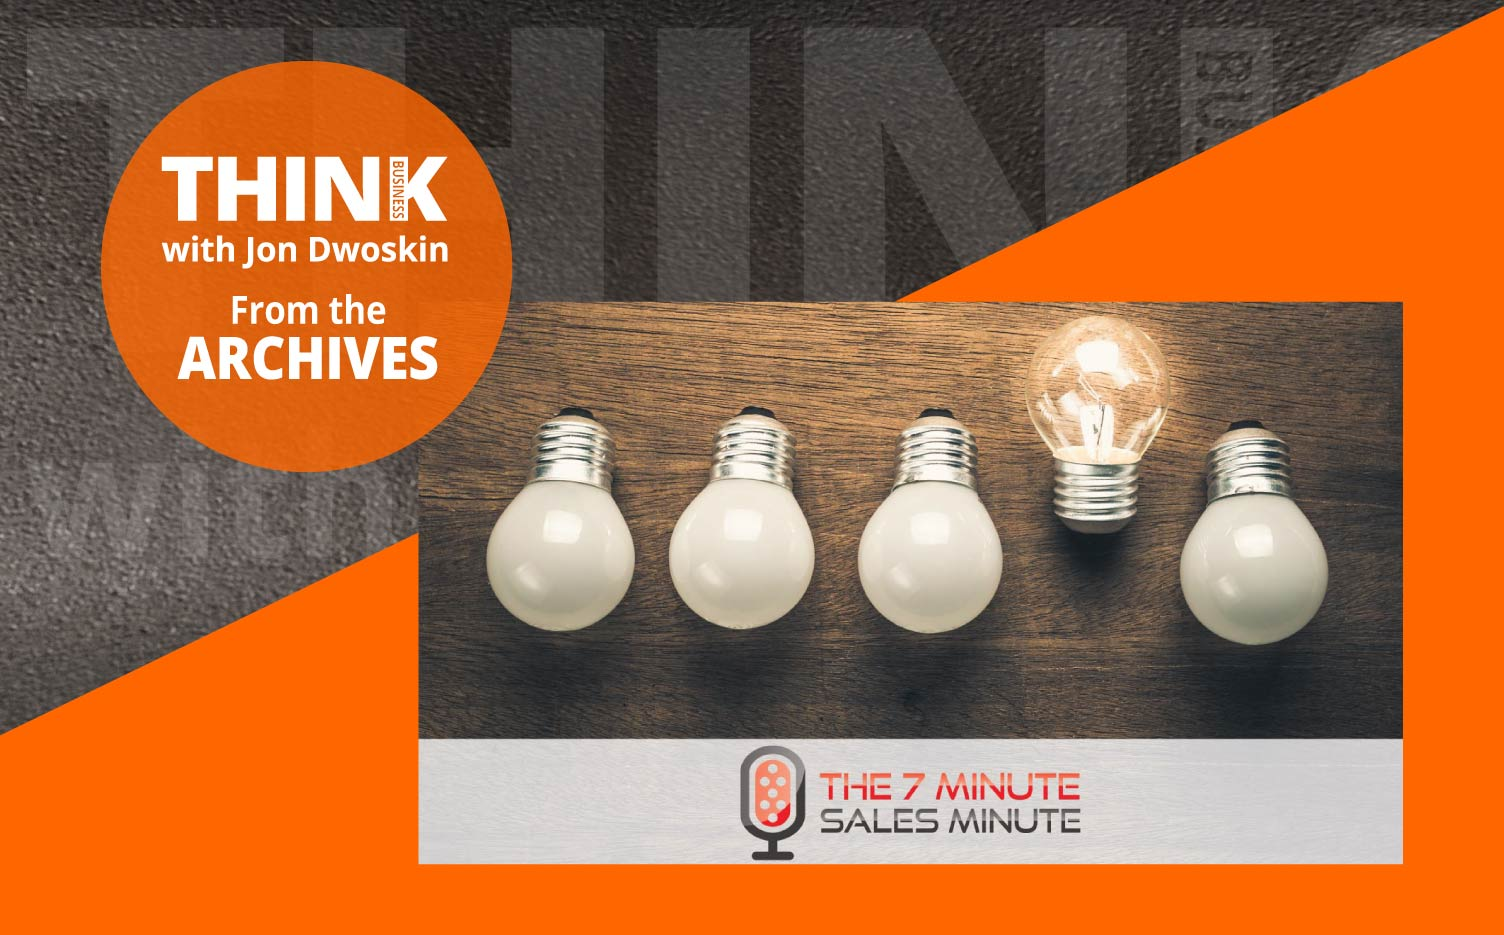 THINK Business Podcast: The Blue Suit Analogy